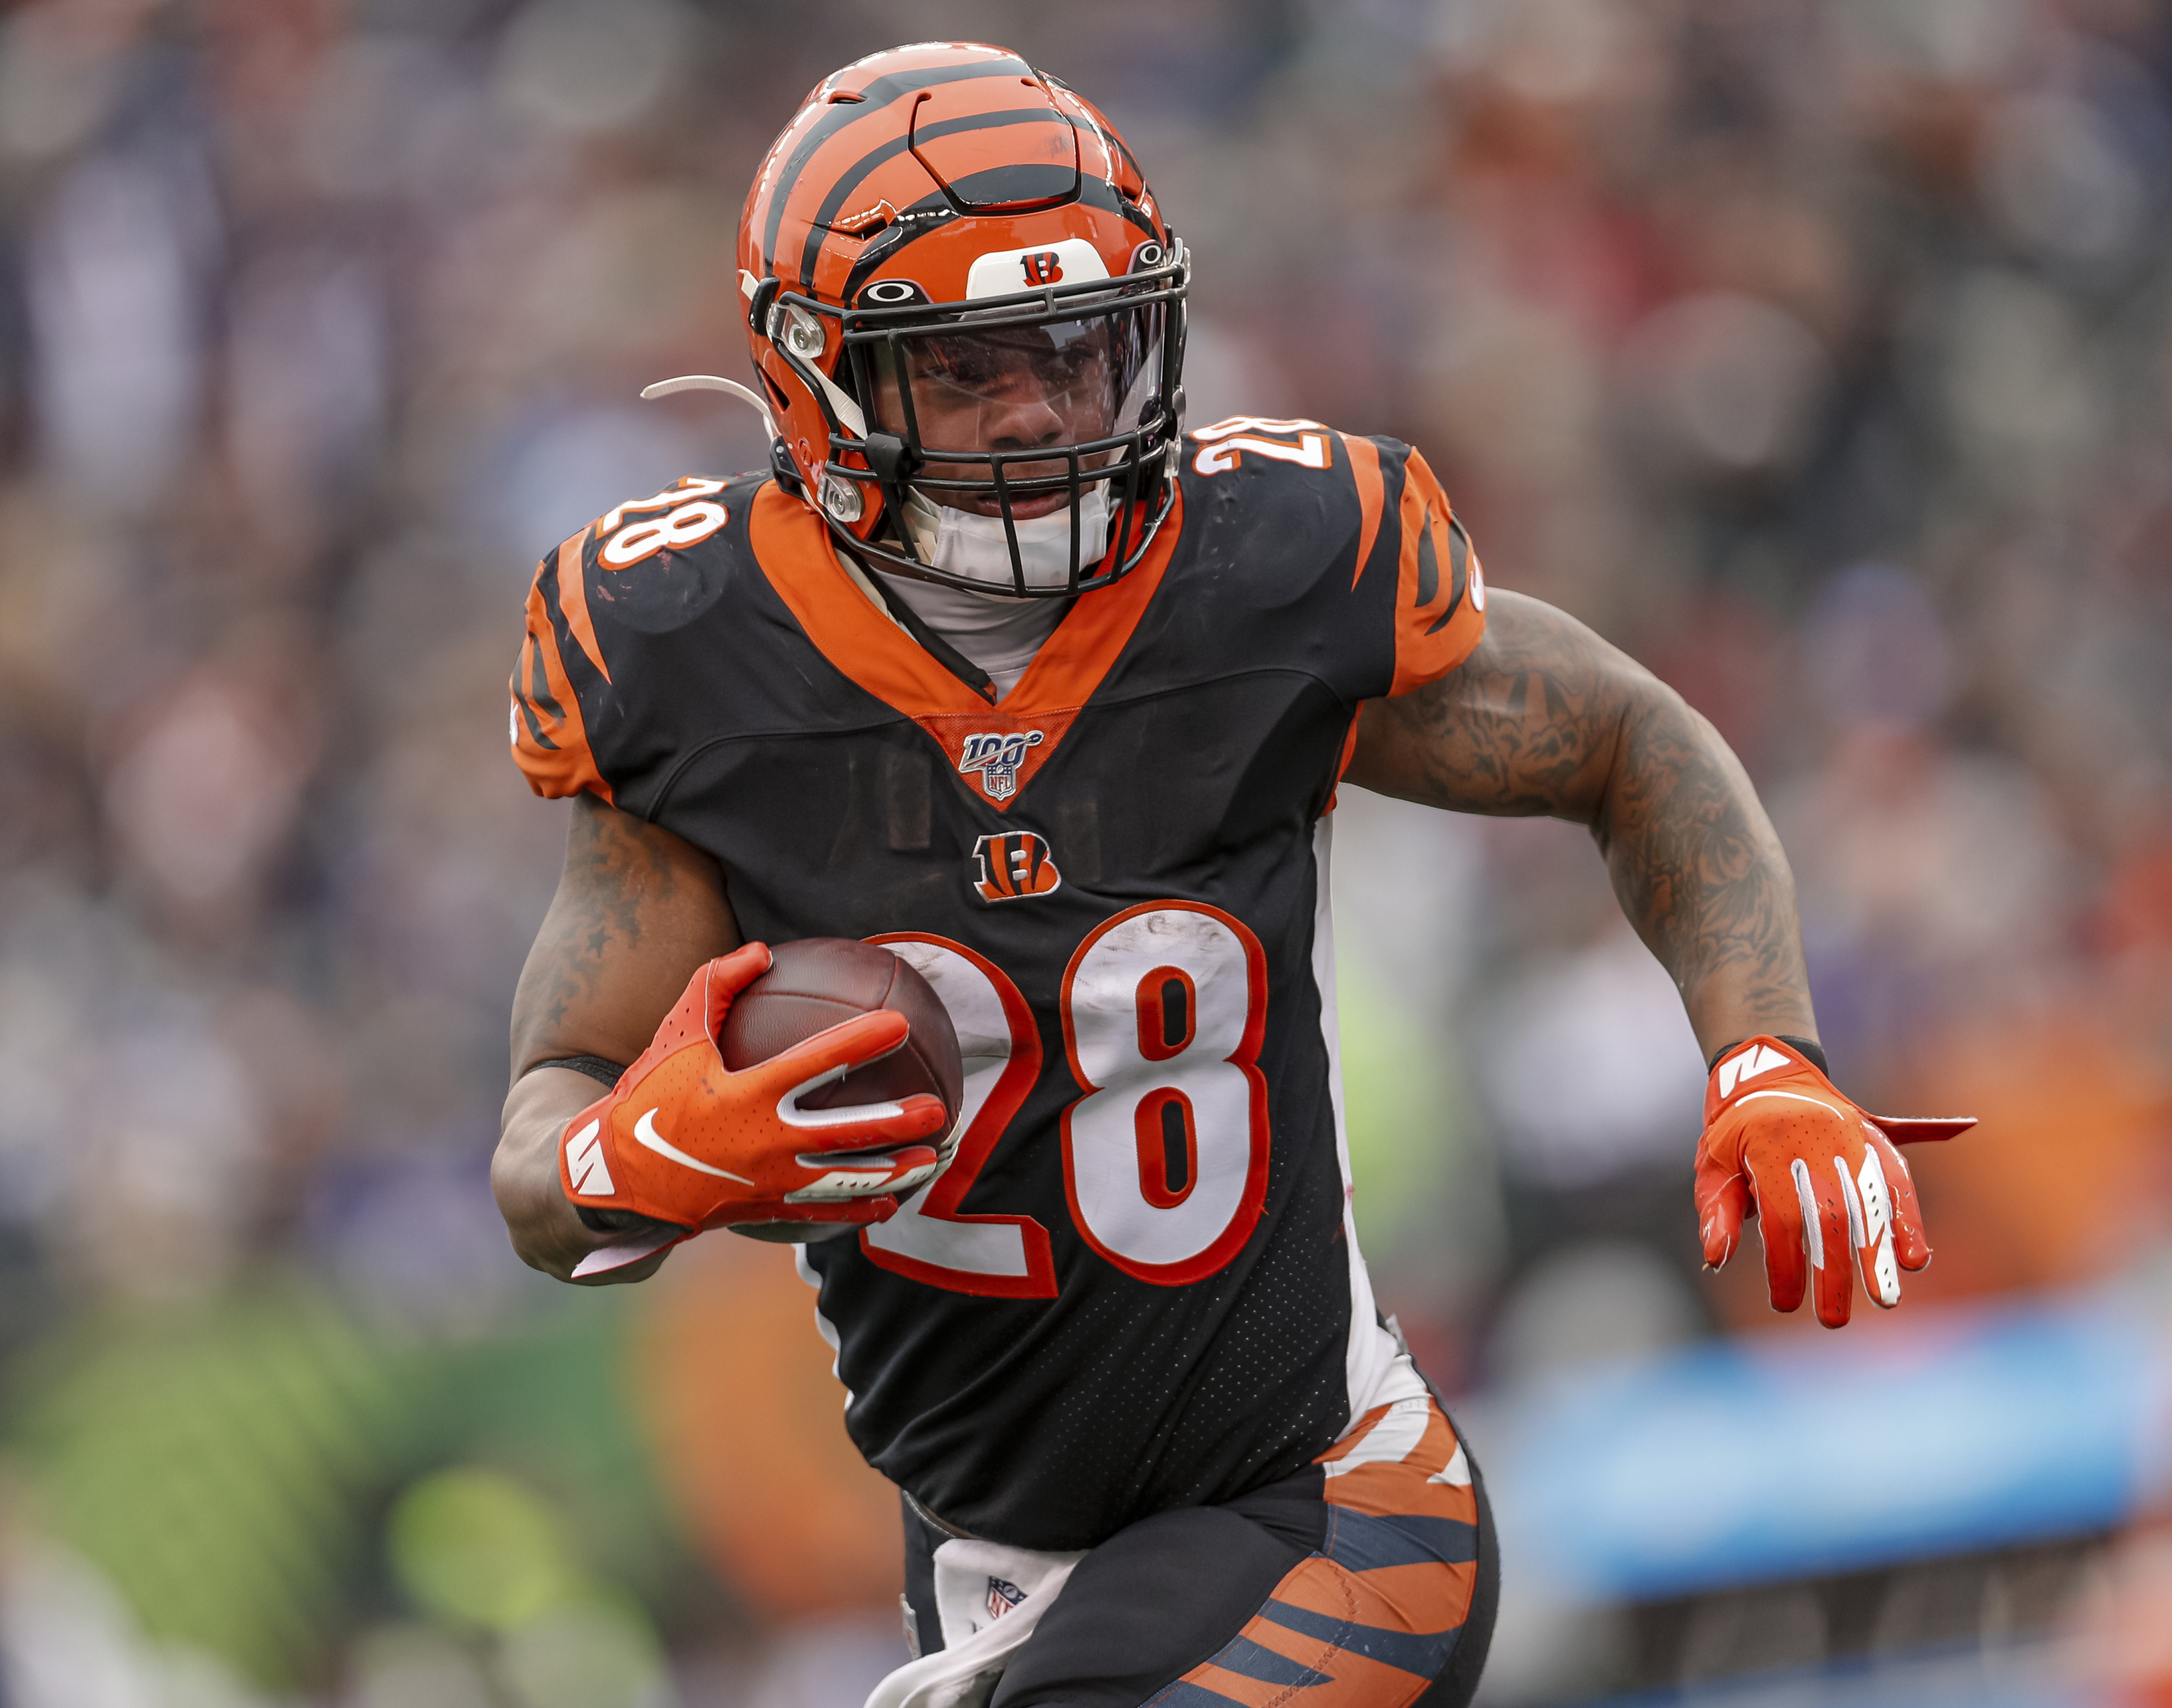 3 Bengals Players who could be on the Next NFL All-Decade Team